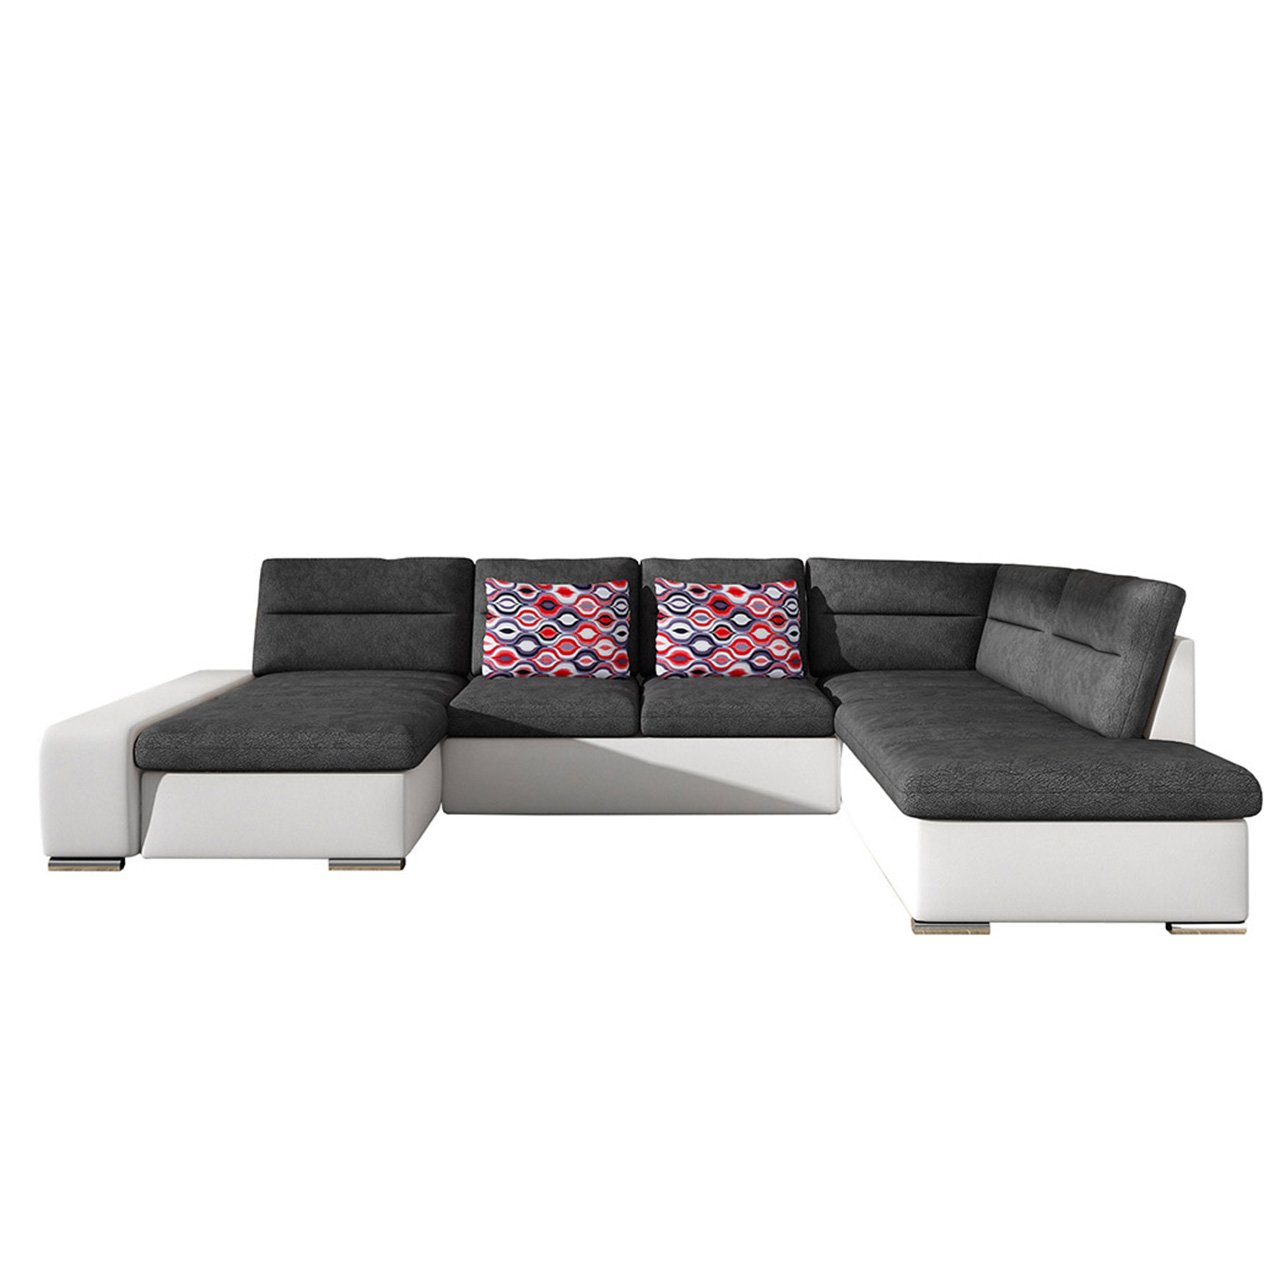 design ecksofa togo gro es eckcouch mit schlaffunktion und bettk sten modern wohnlandschaft. Black Bedroom Furniture Sets. Home Design Ideas